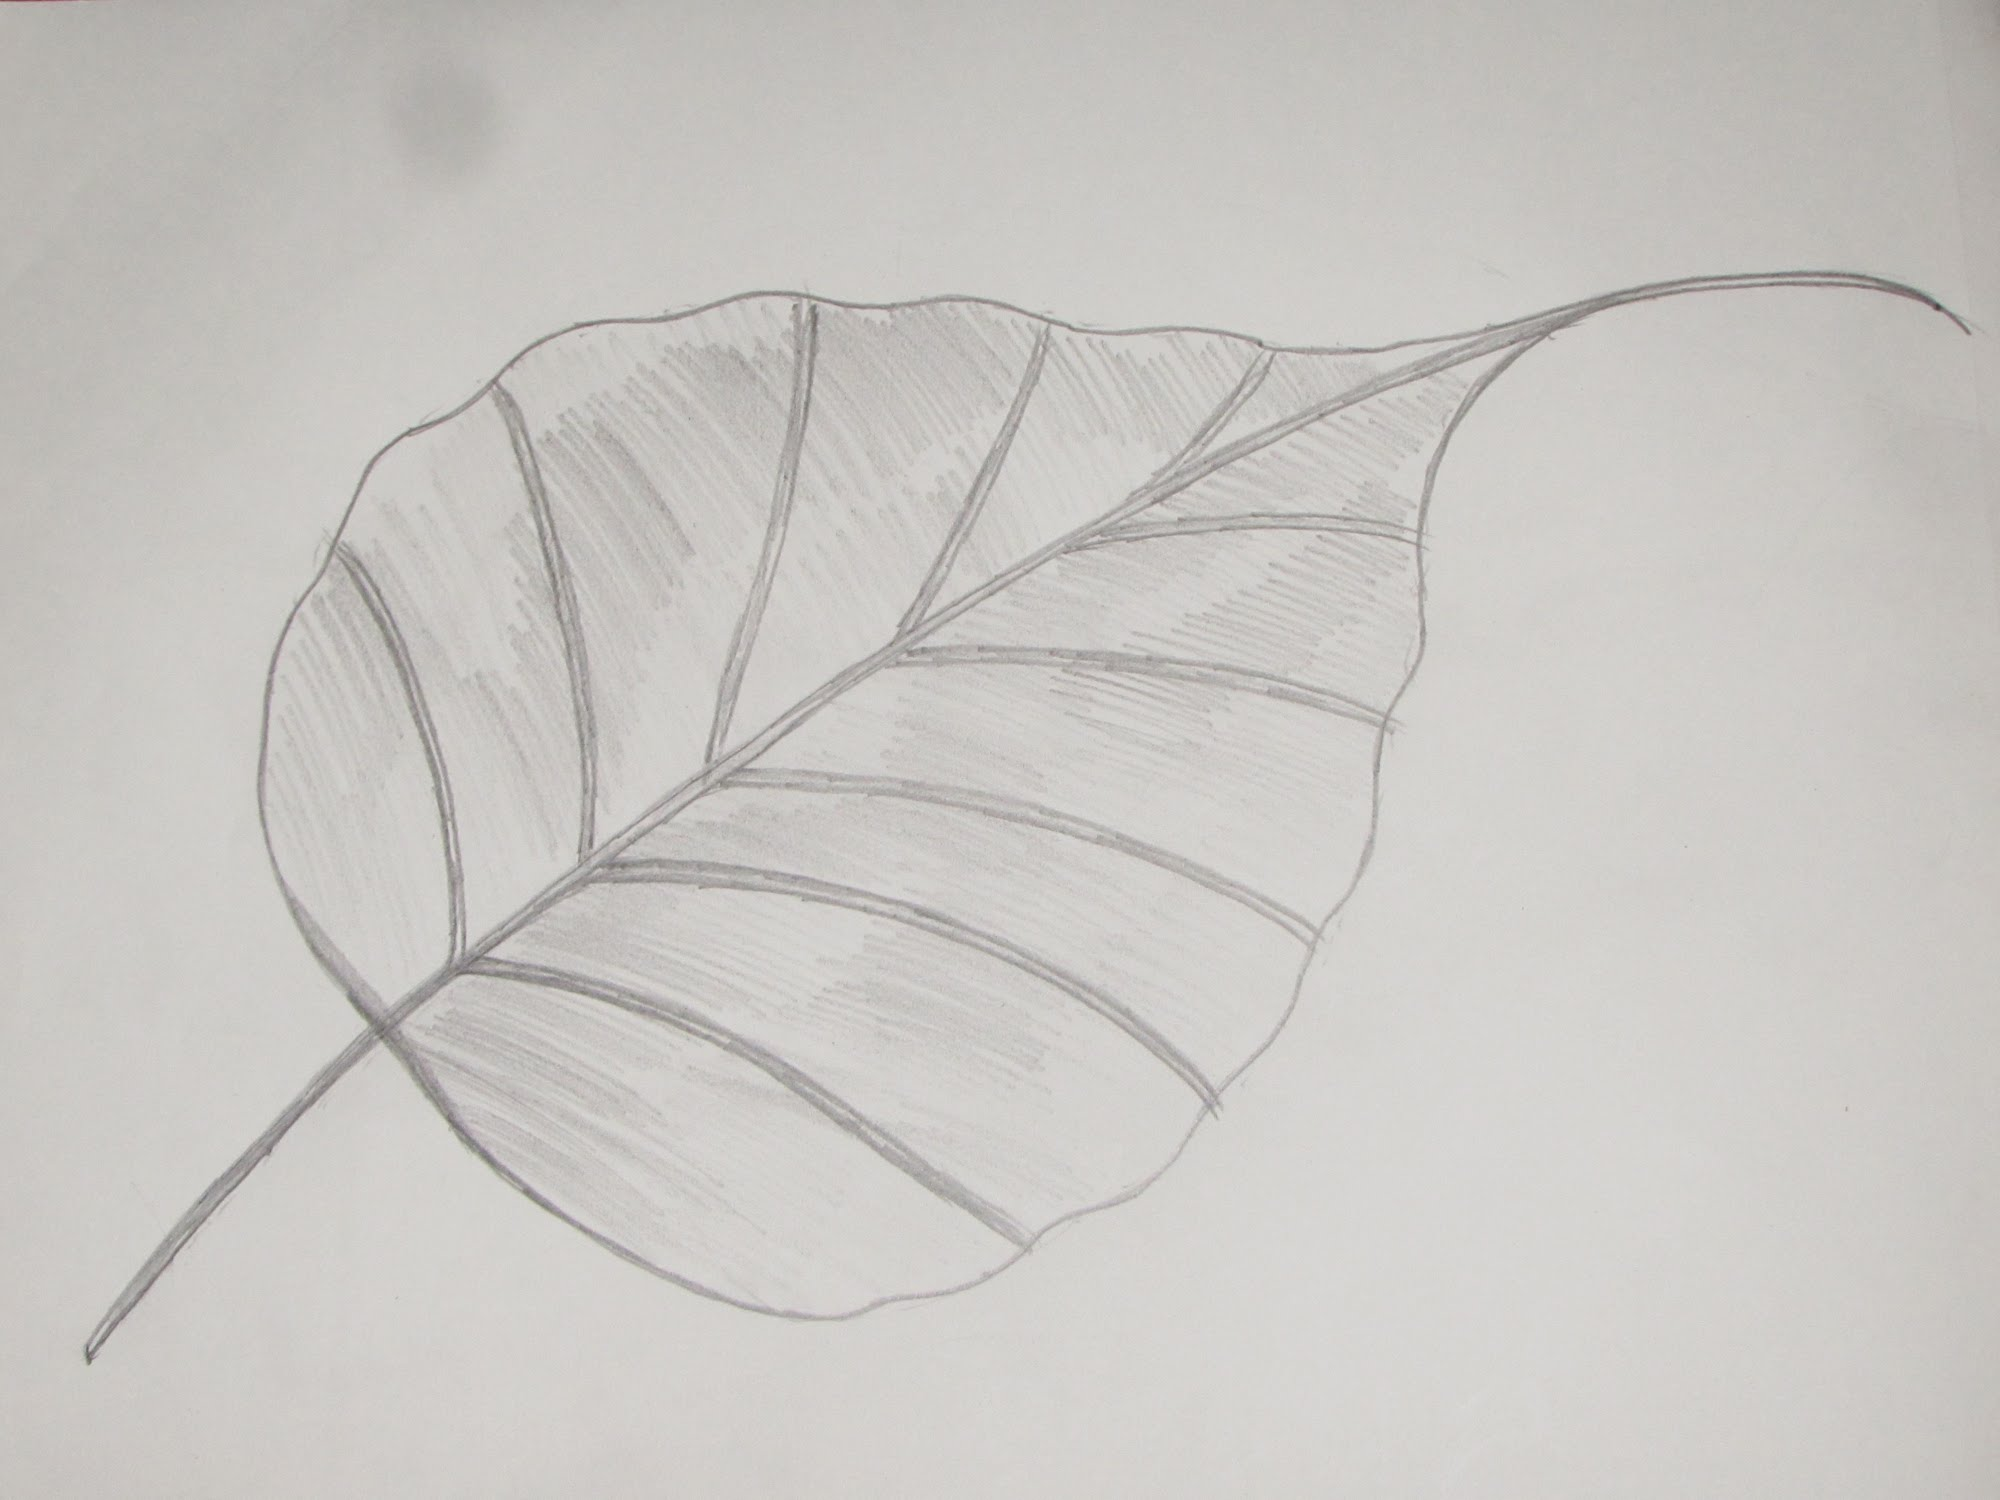 Drawn leaves shaded leaf Religiosa Draw Ficus Leaf Sketch